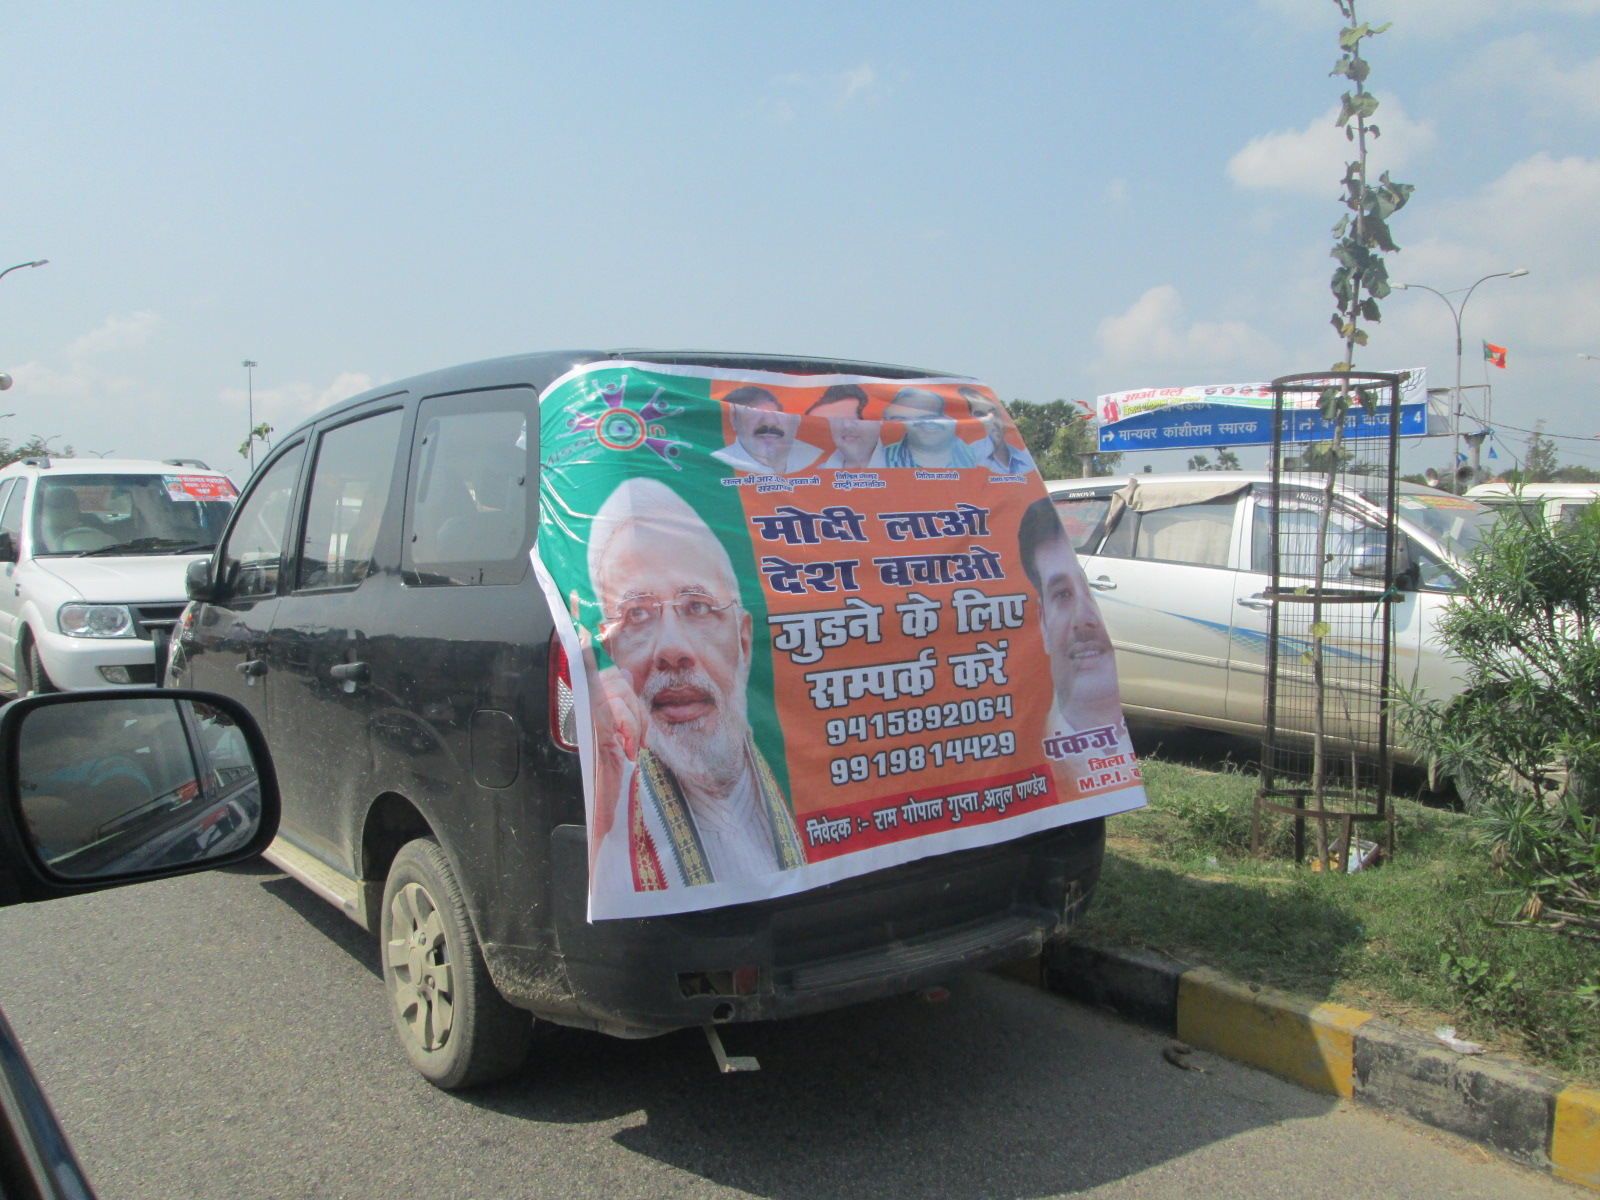 Modi supporters in Lucknow